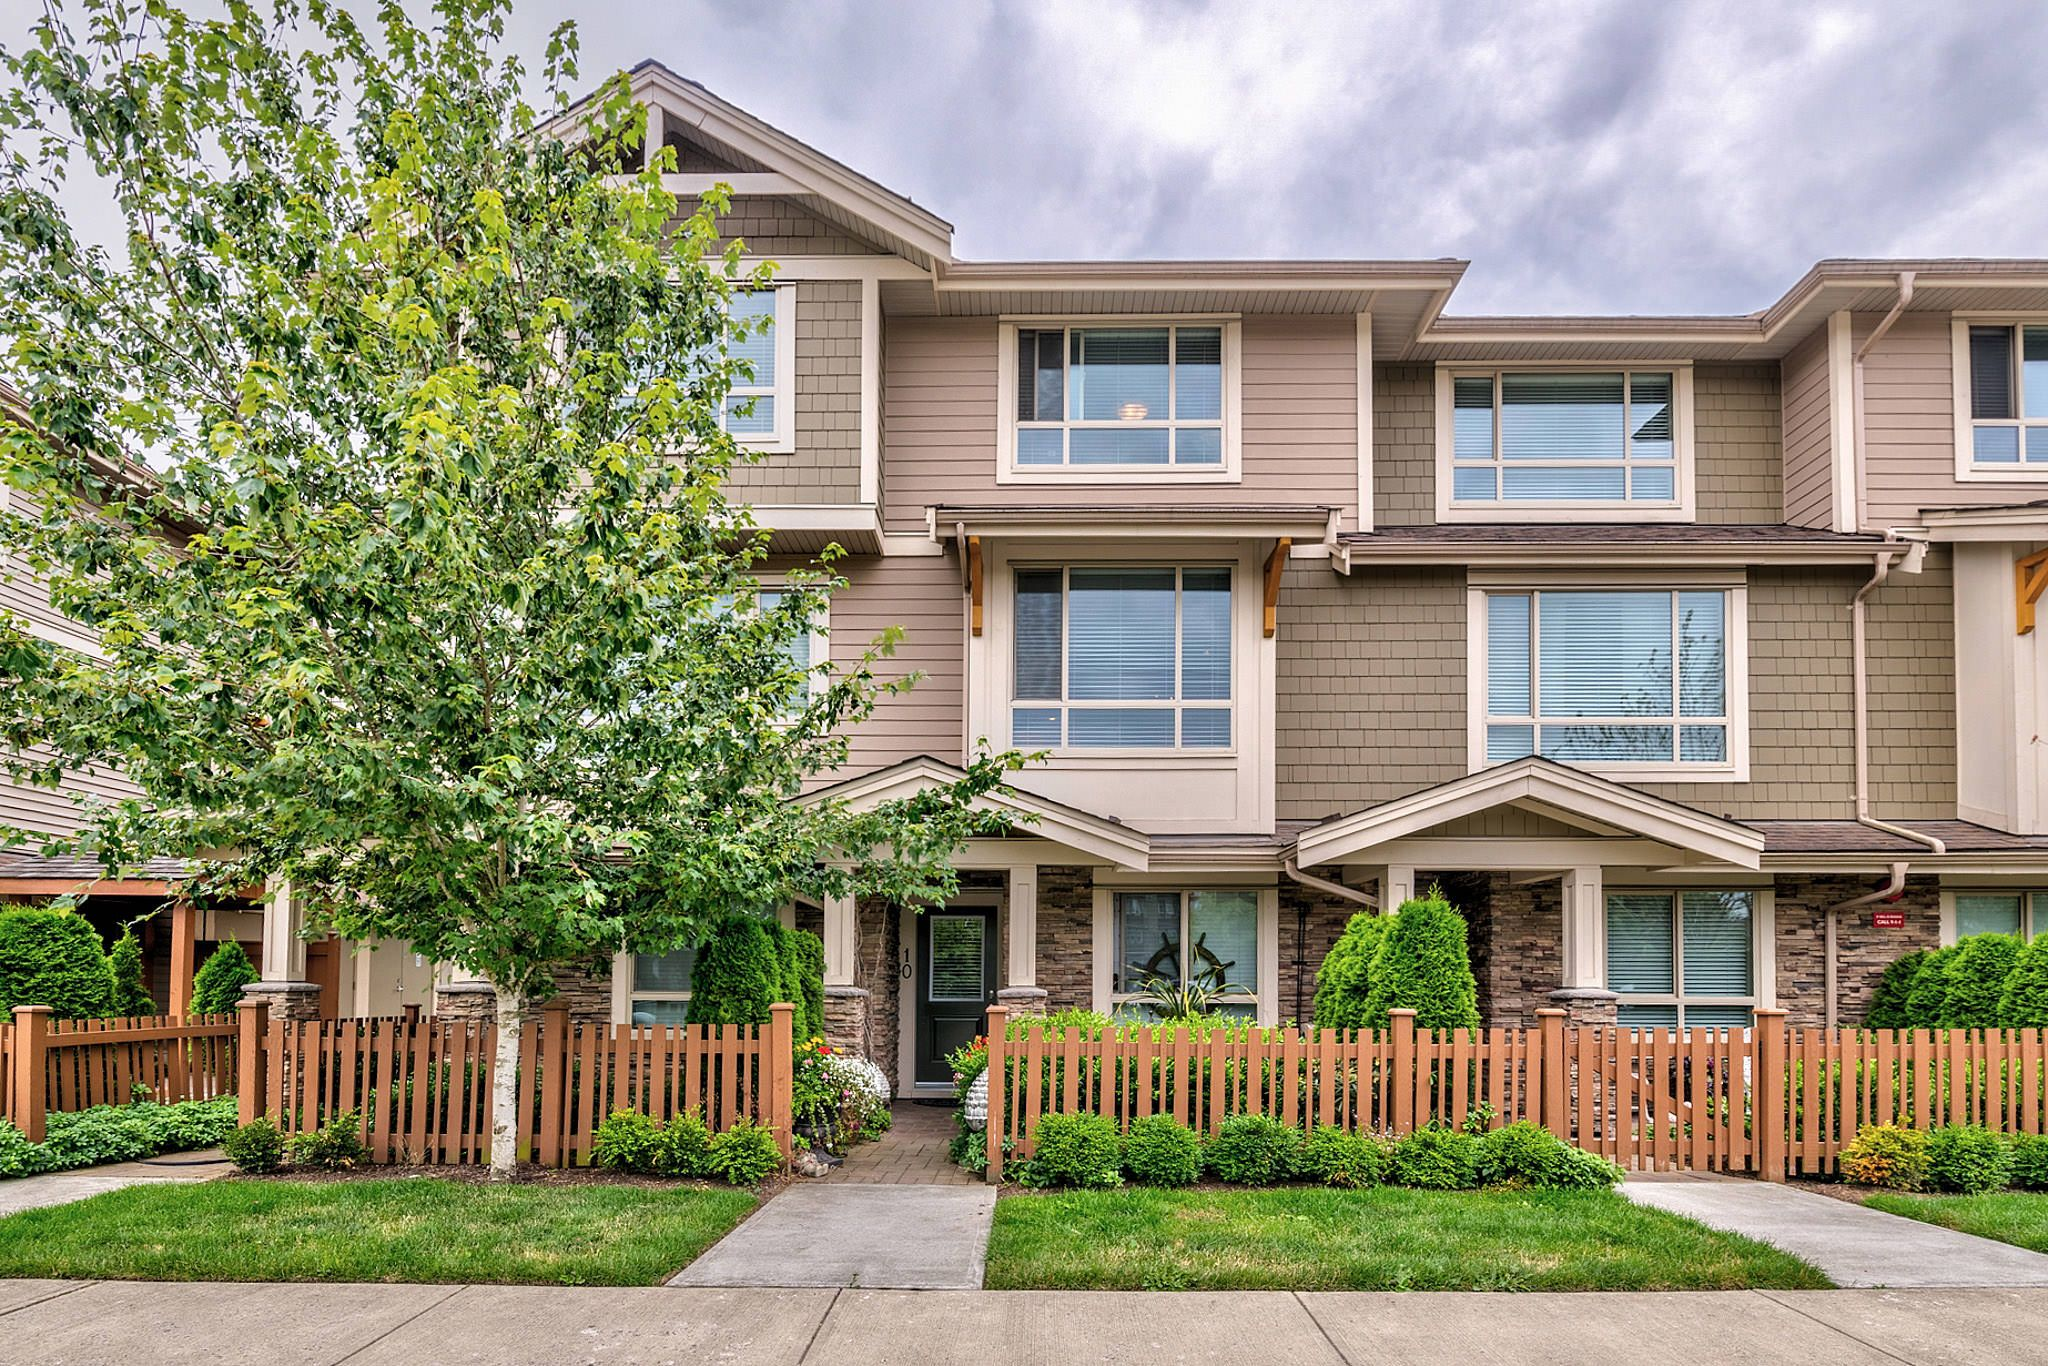 Photo 2: Photos: 10 19742 55A Street in Langley: Langley City Townhouse for sale : MLS®# R2388093